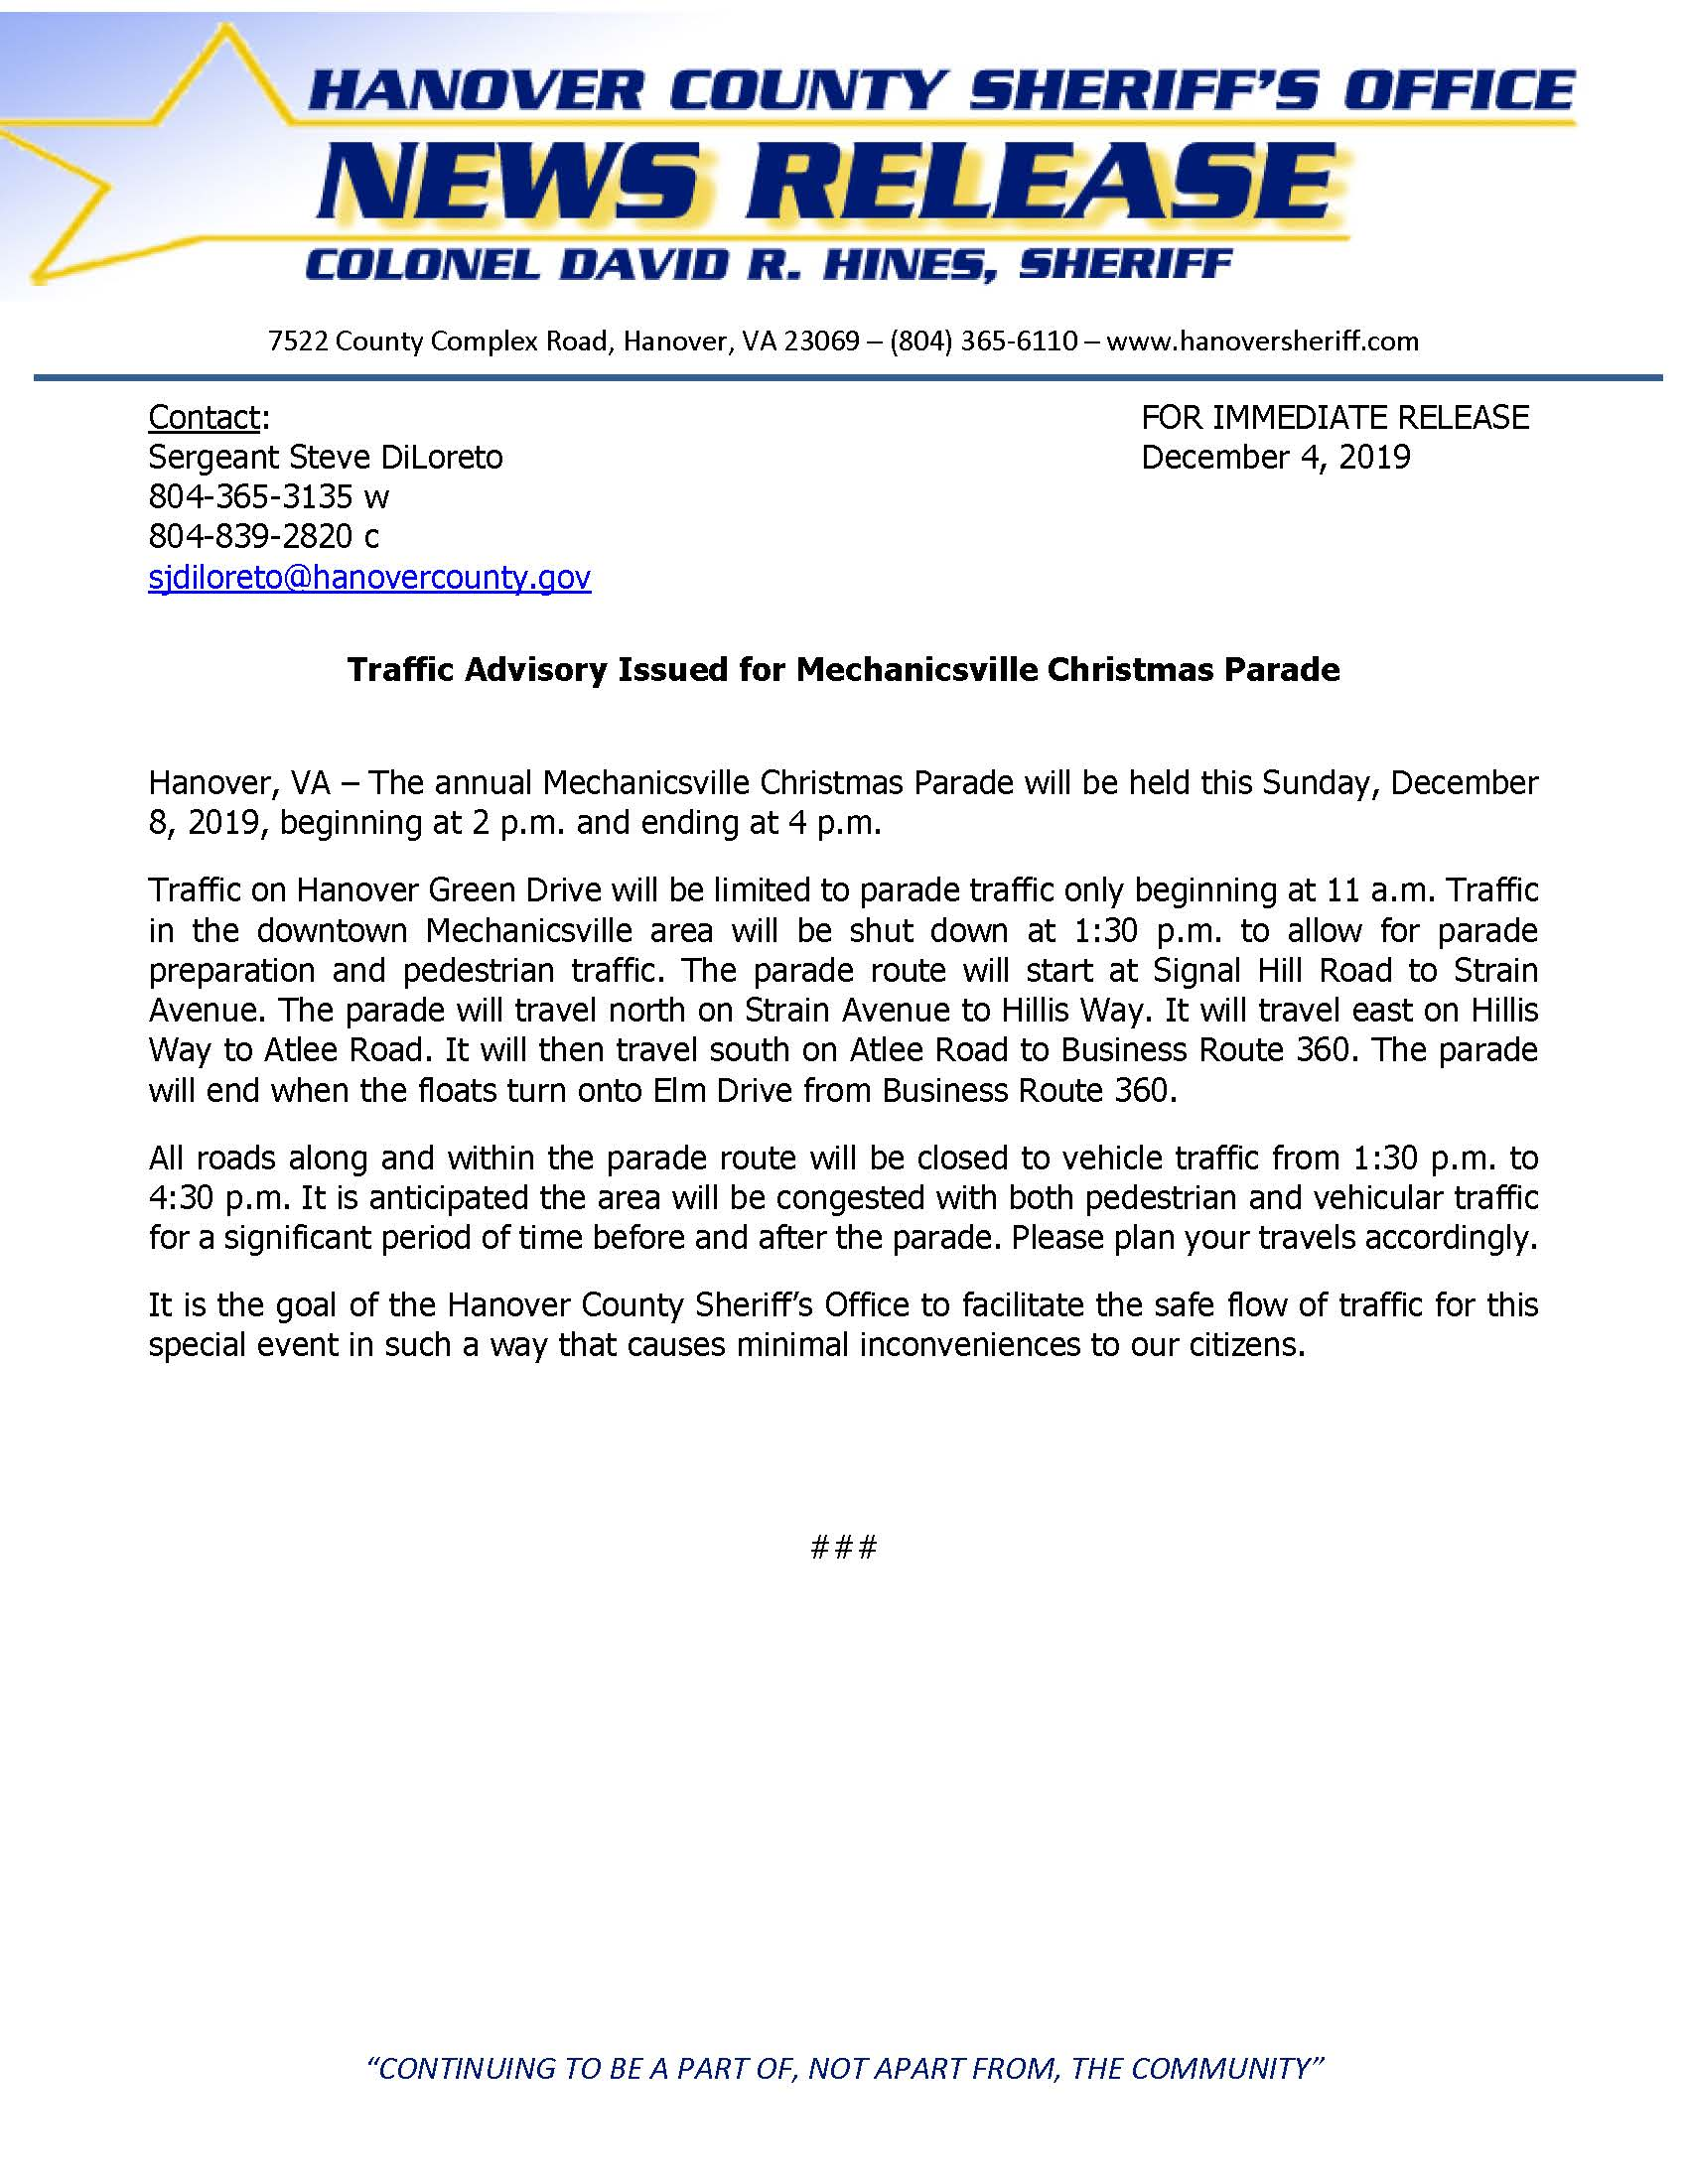 HCSO - Mechanicsville Christmas Parade- December 2019